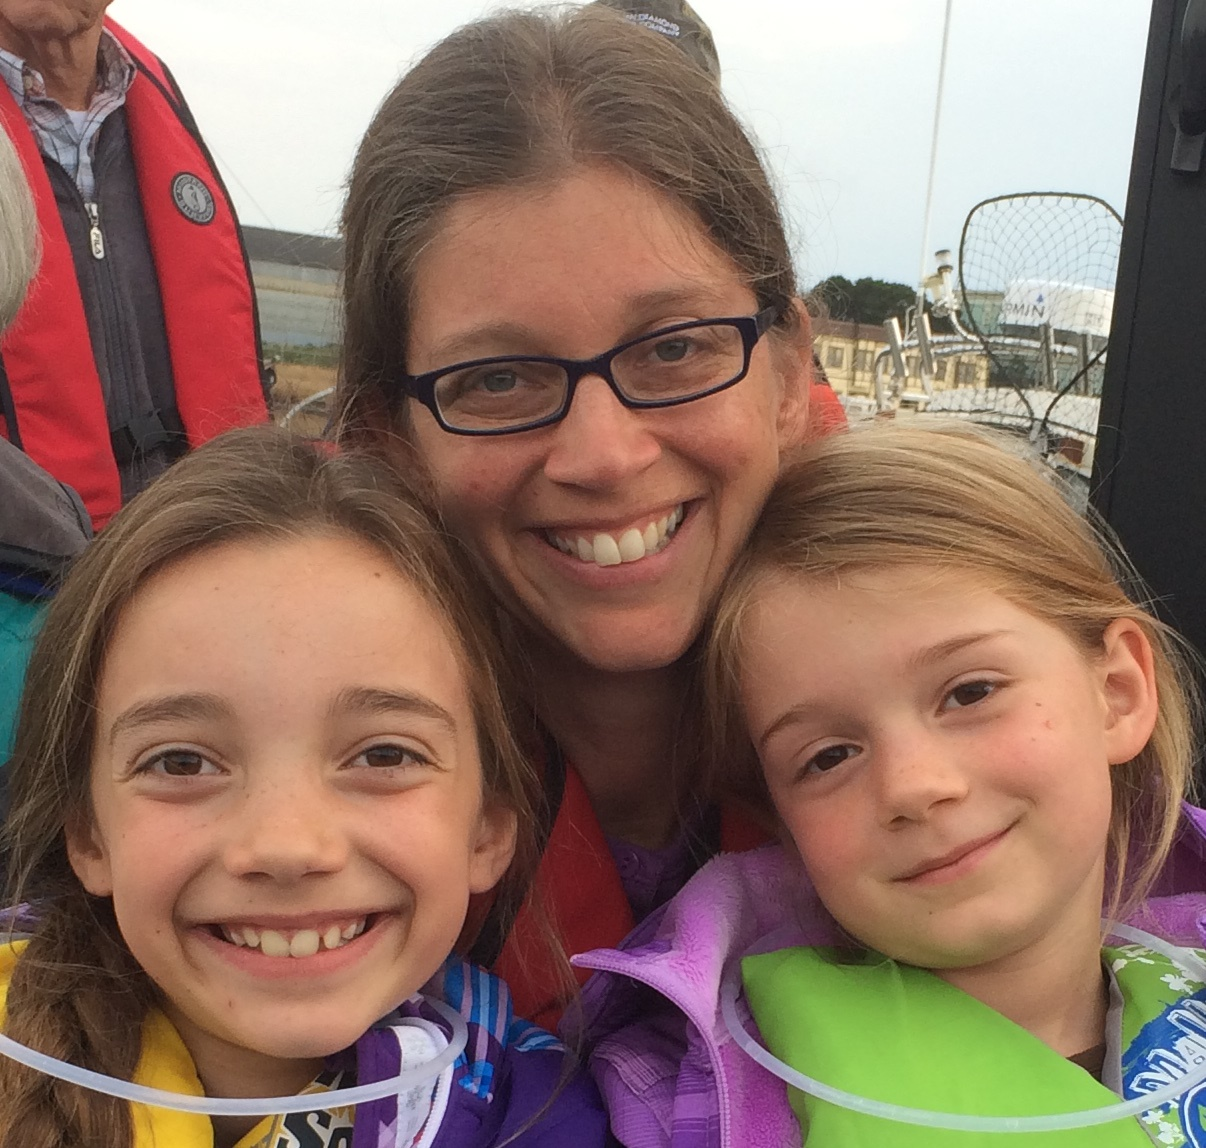 Executive Director, Hillarie Beyer, and her two children